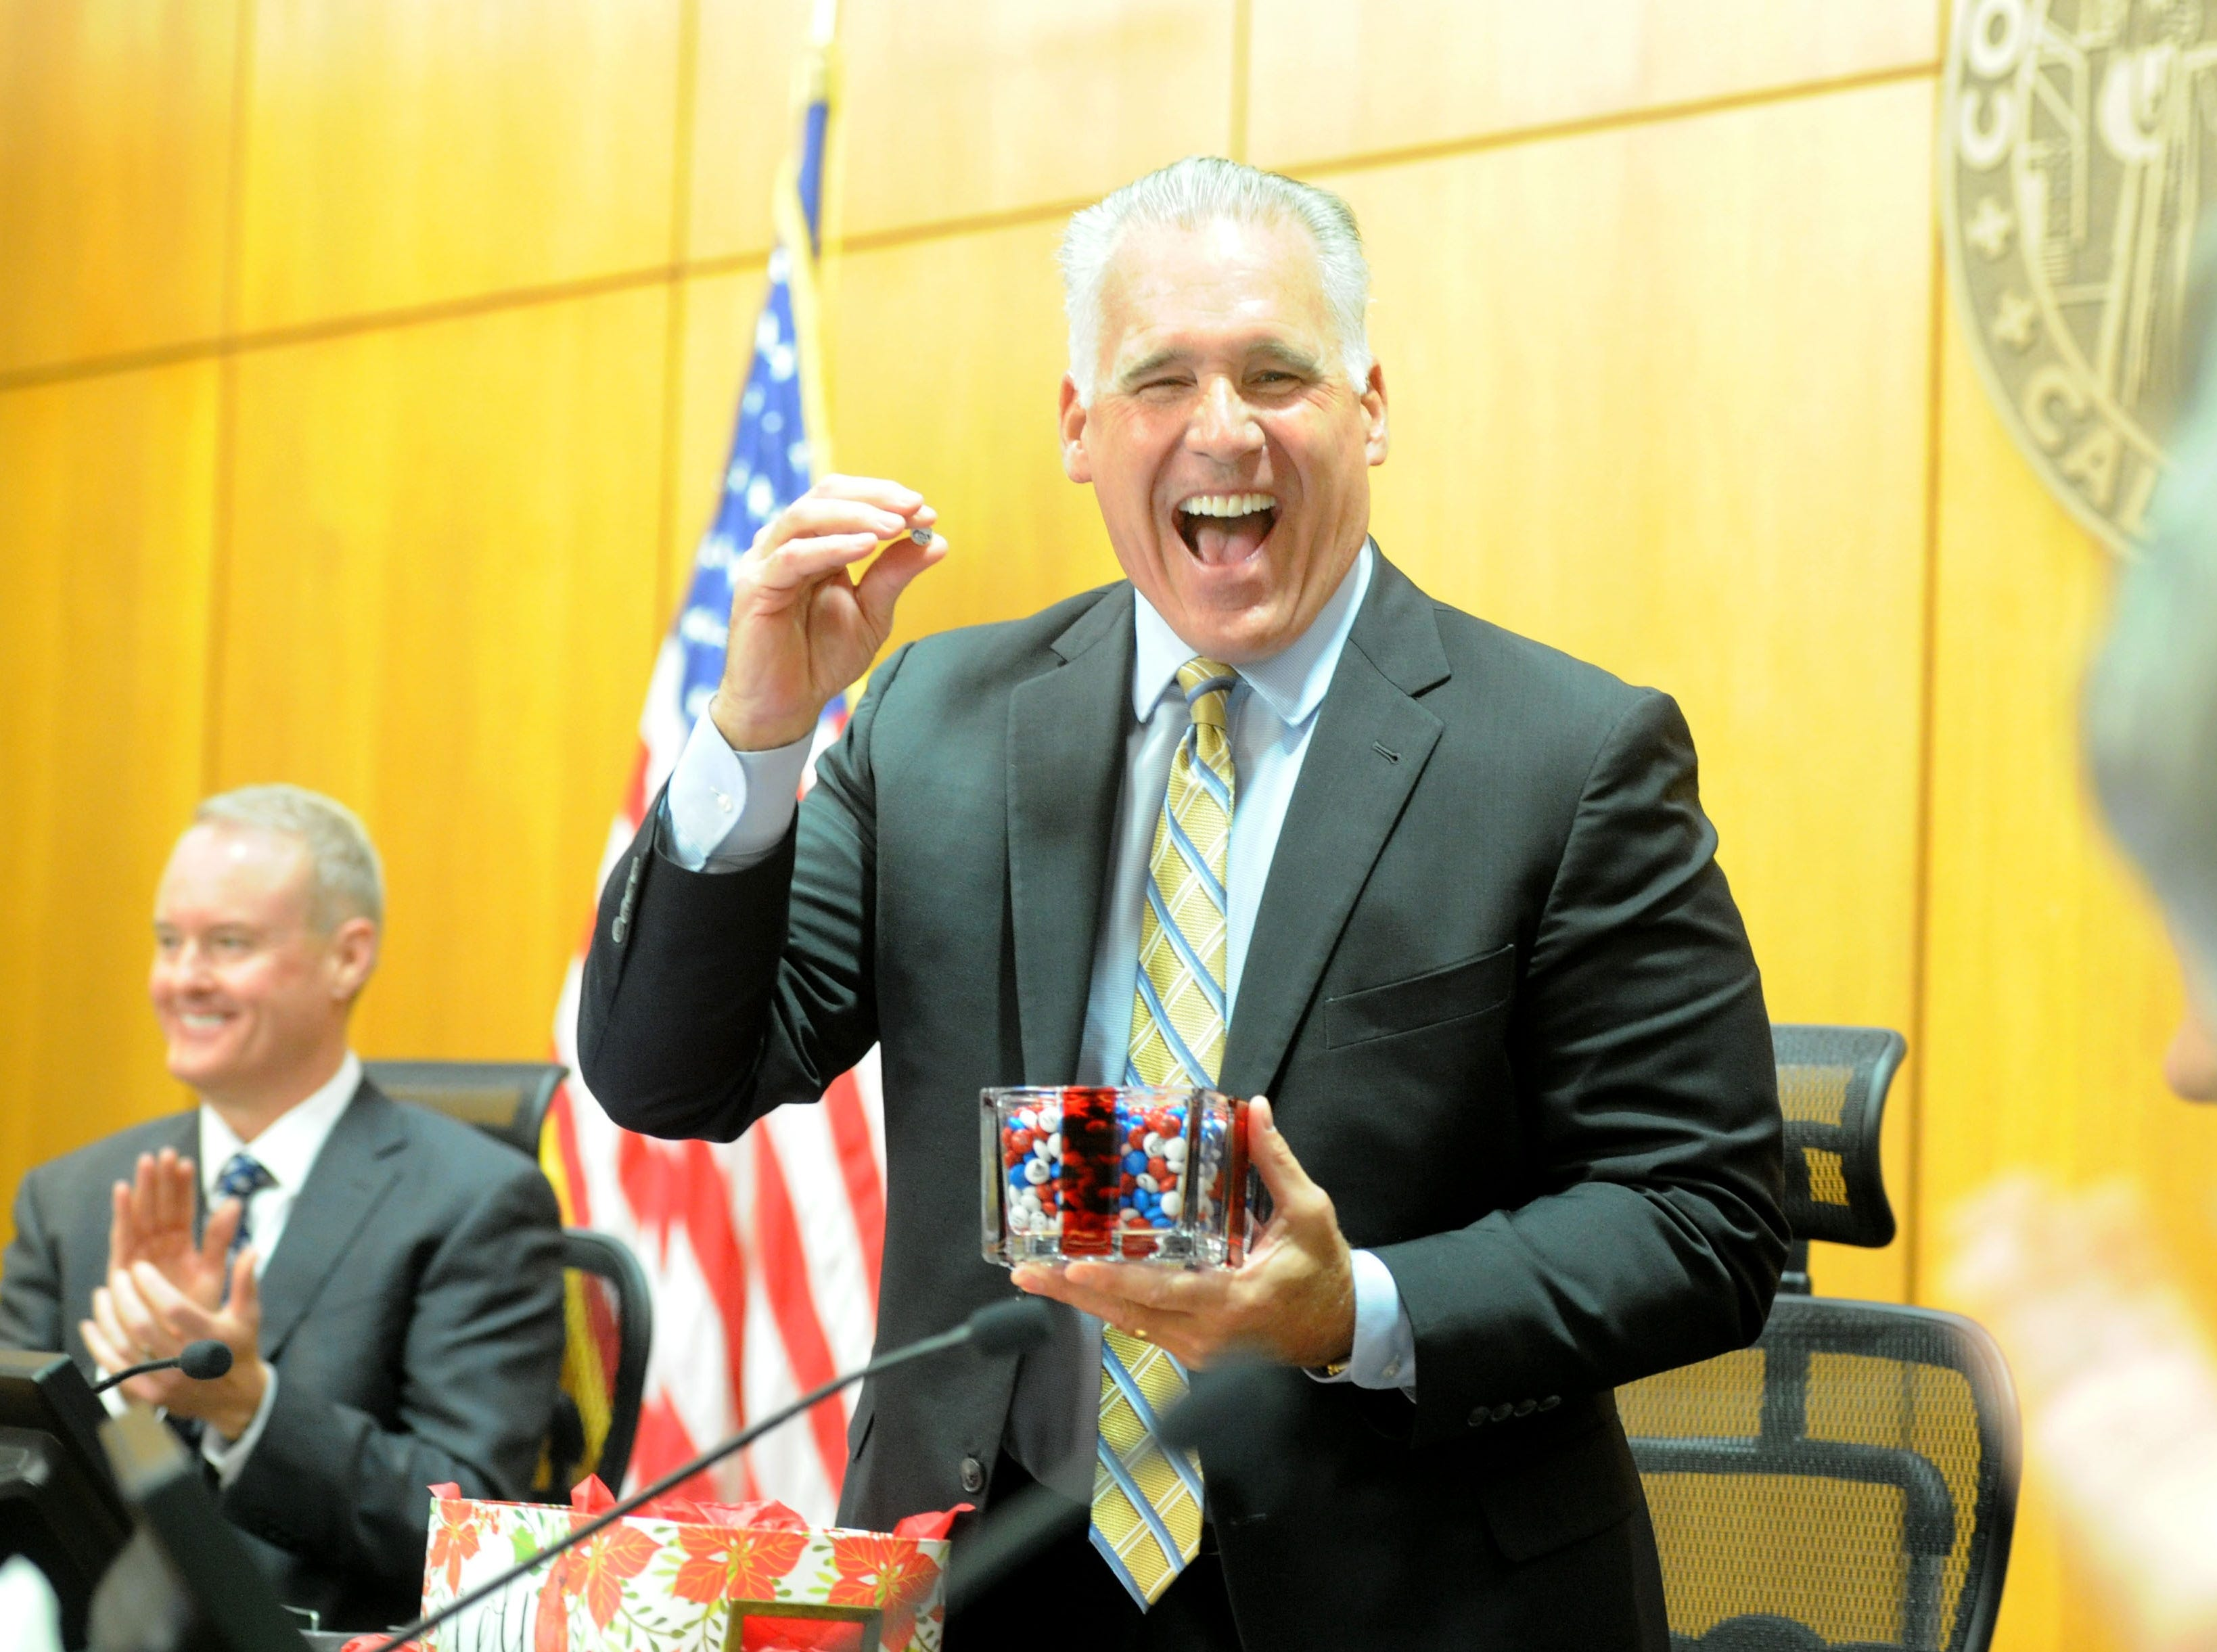 Supervisor Peter Foy looks at Supervisor Linda Parks after she gives him a package of M&M's with his face on them at Foy's last meeting Tuesday as a member of the Board of Supervisors.